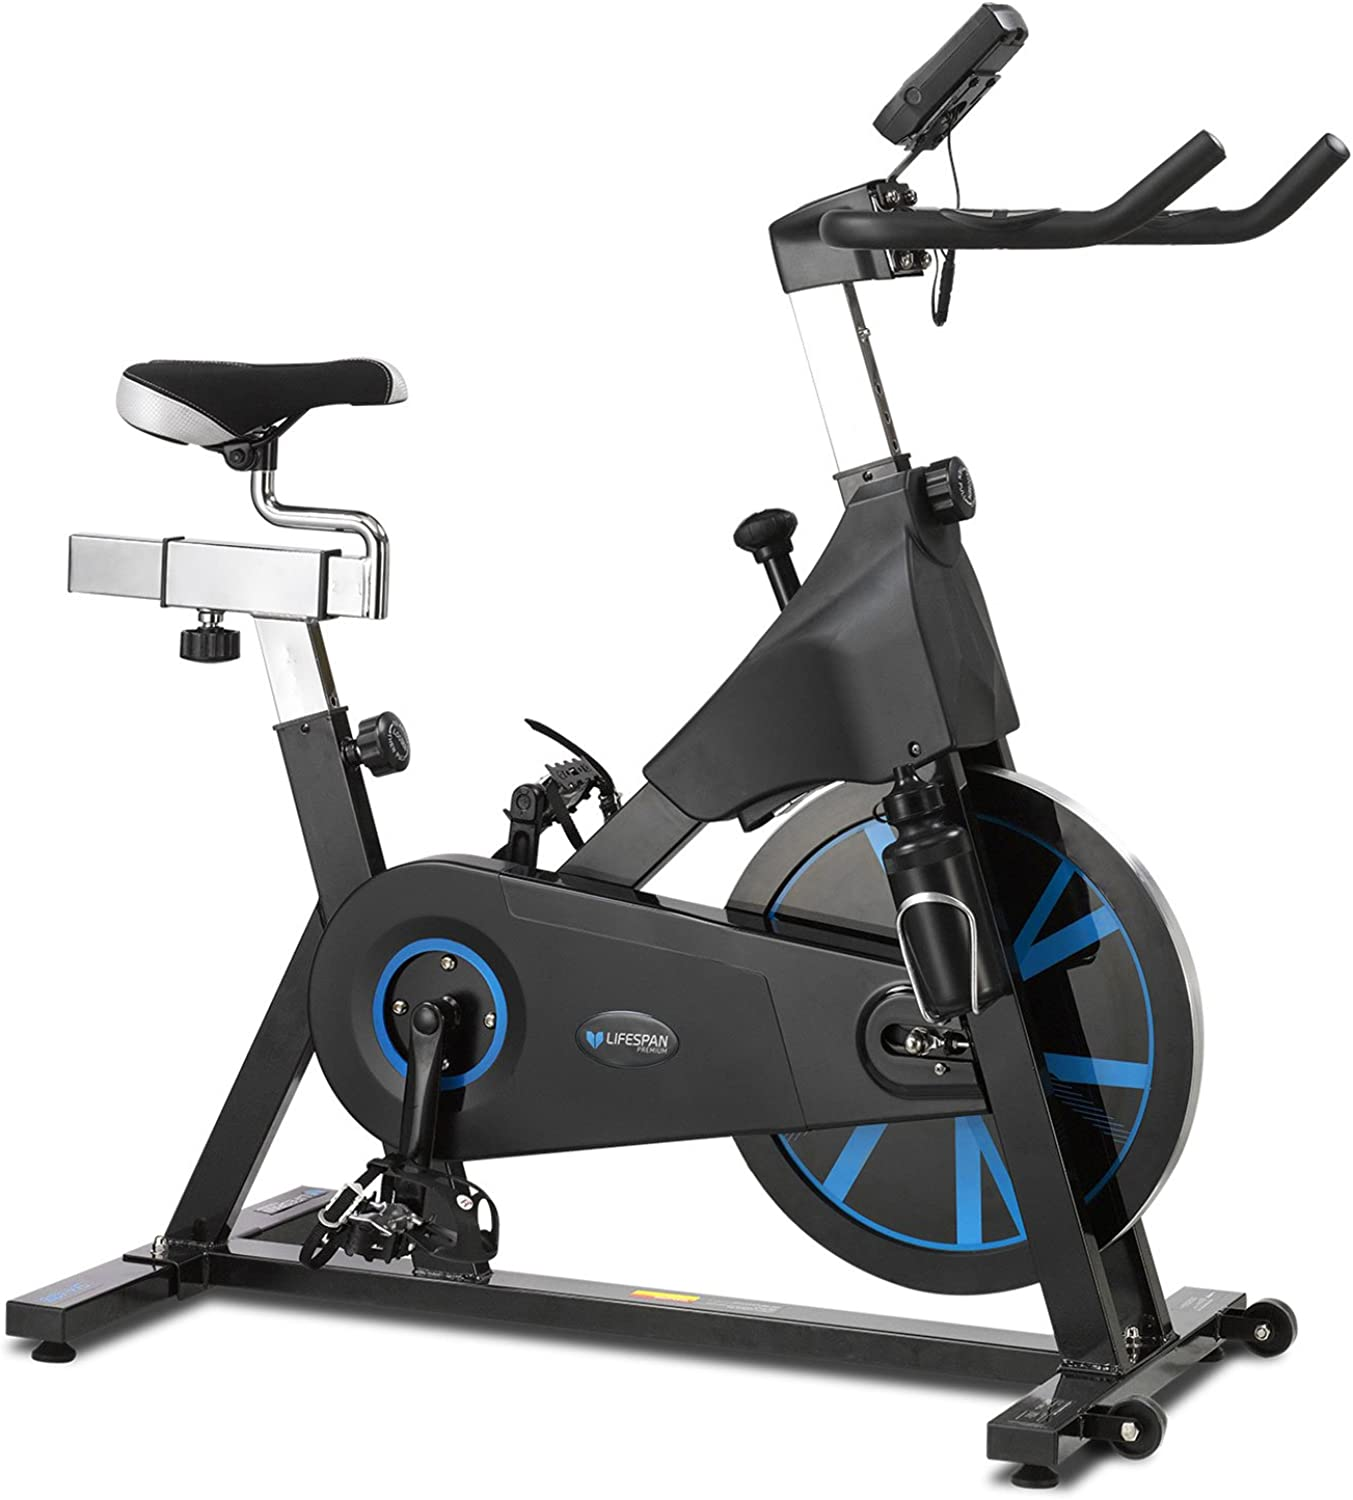 Lifespan Fitness SM400 Magnetic Spin Bike but it comes up as only SM400 Magnetic Spin Bike